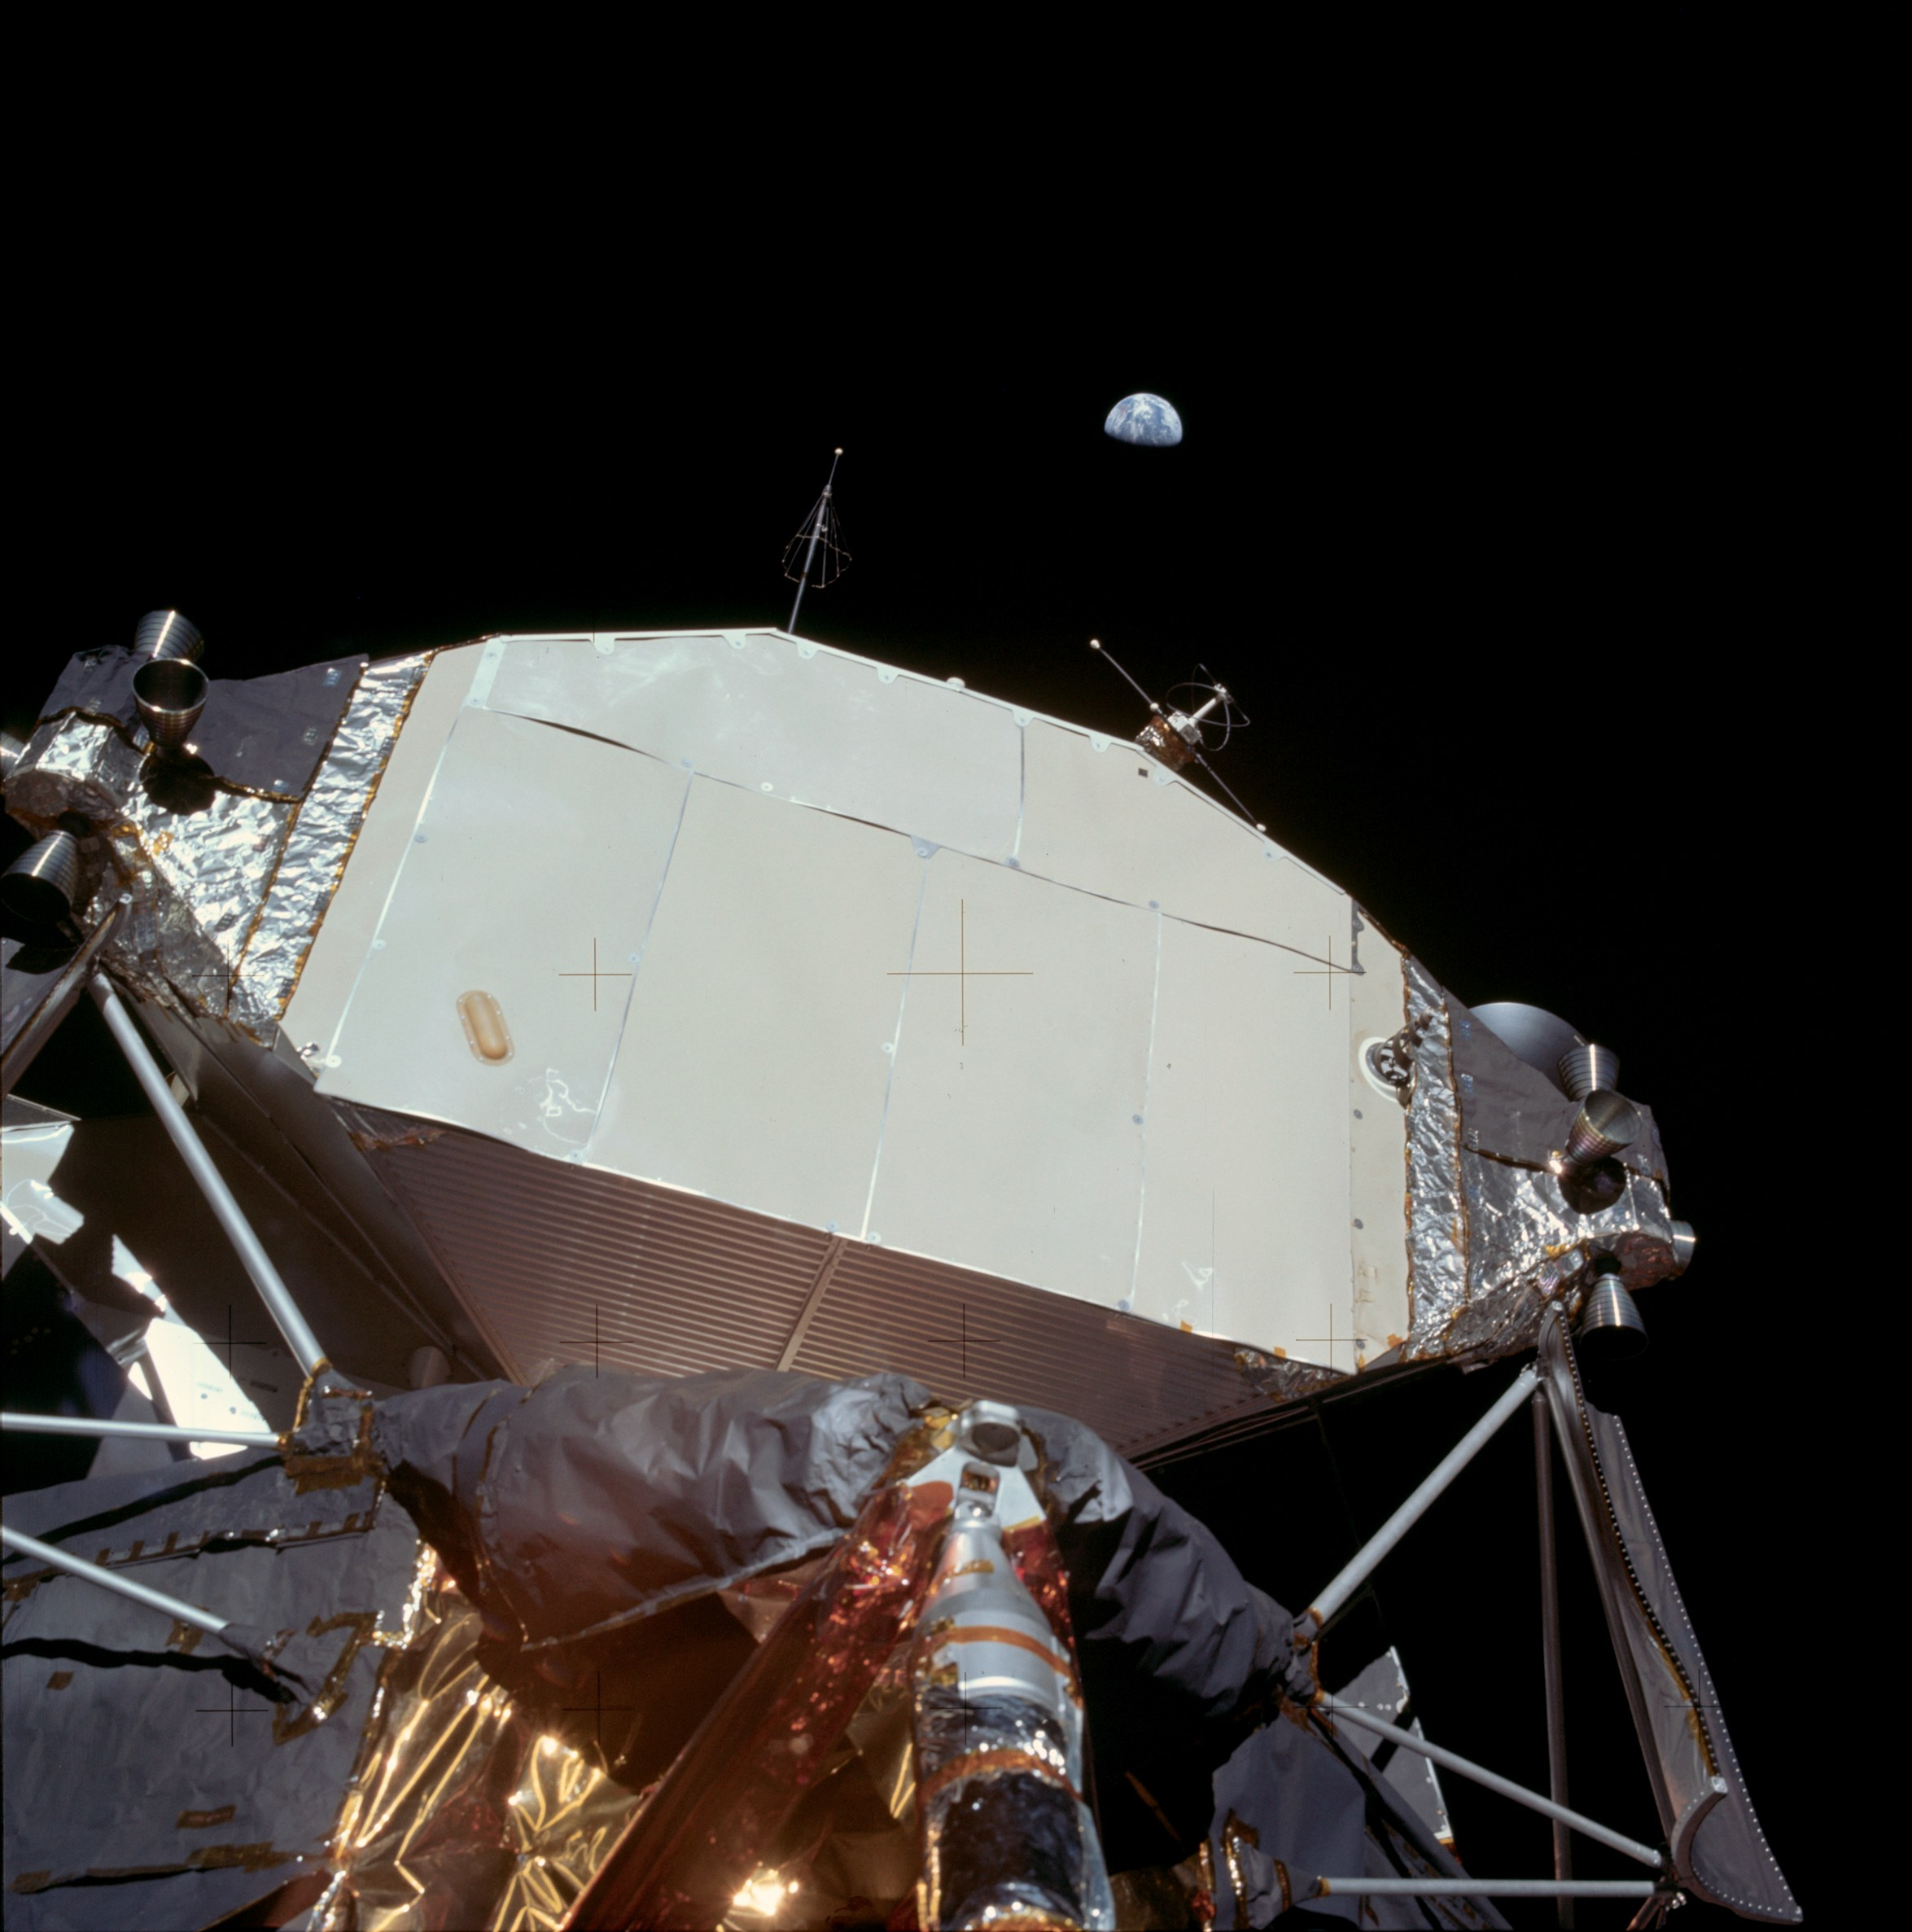 nasa apollo earth images - photo #32